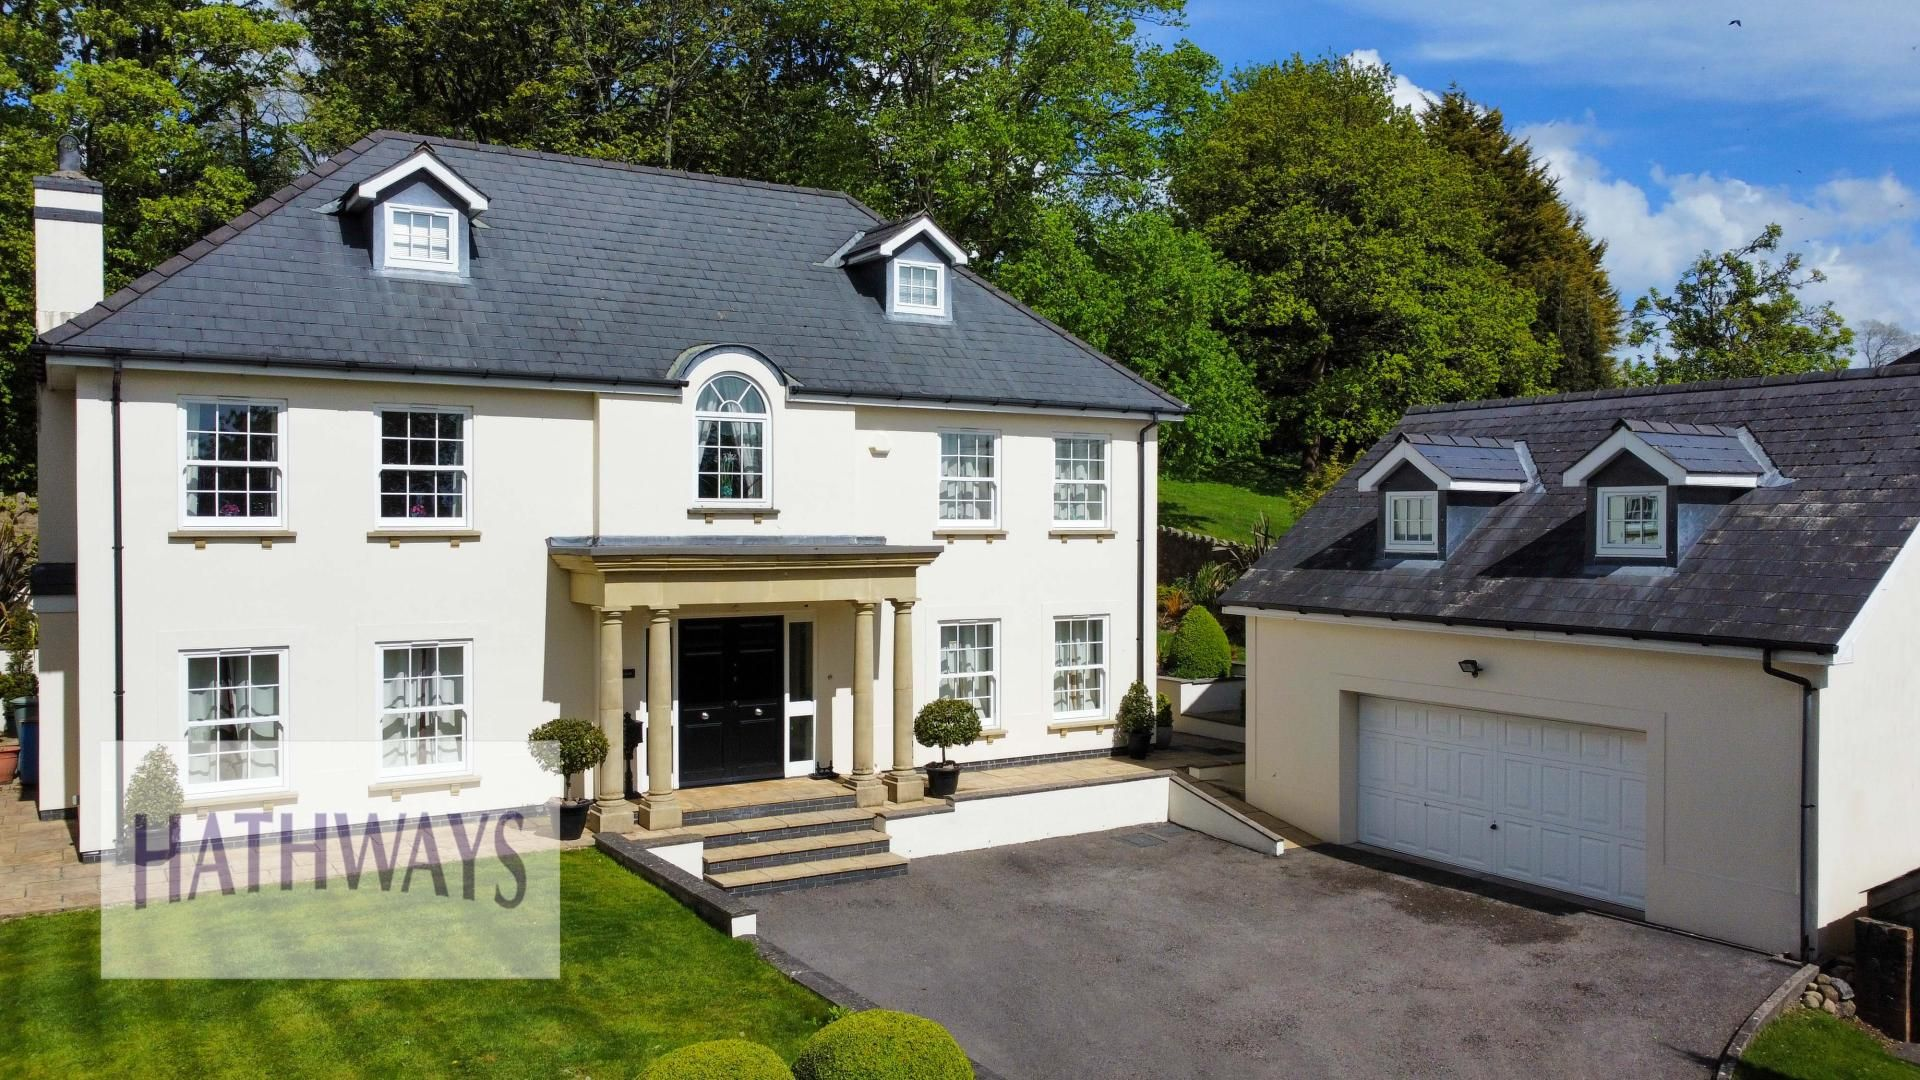 5 bed house for sale in Highfield Close - Property Image 1